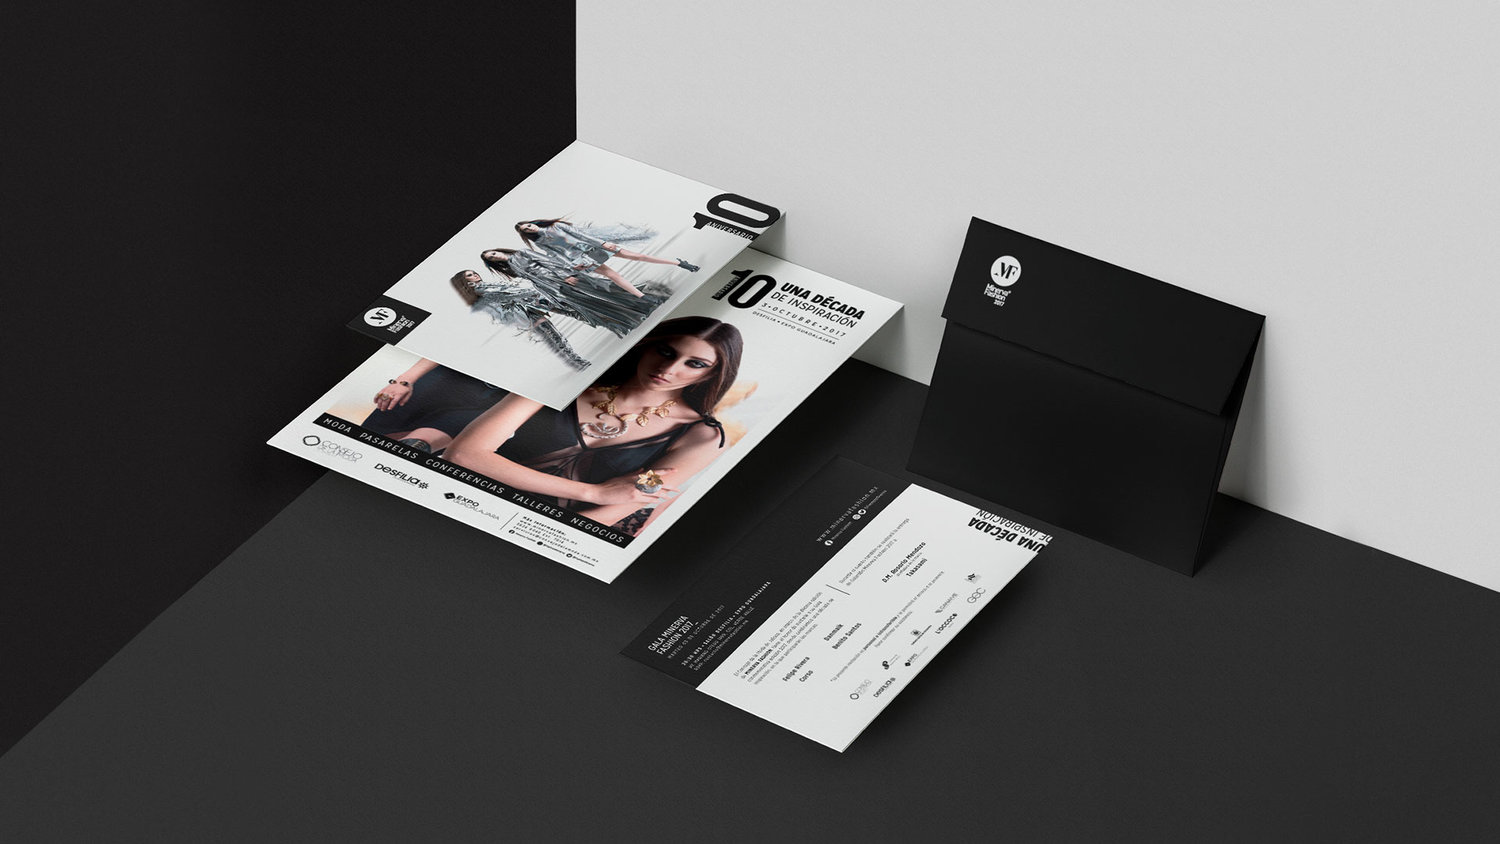 They had been experiencing issues maintaining a consistent, coherent communication between their different communication channels. That's why we strived to create a solid identity system that ensured consistent communication.